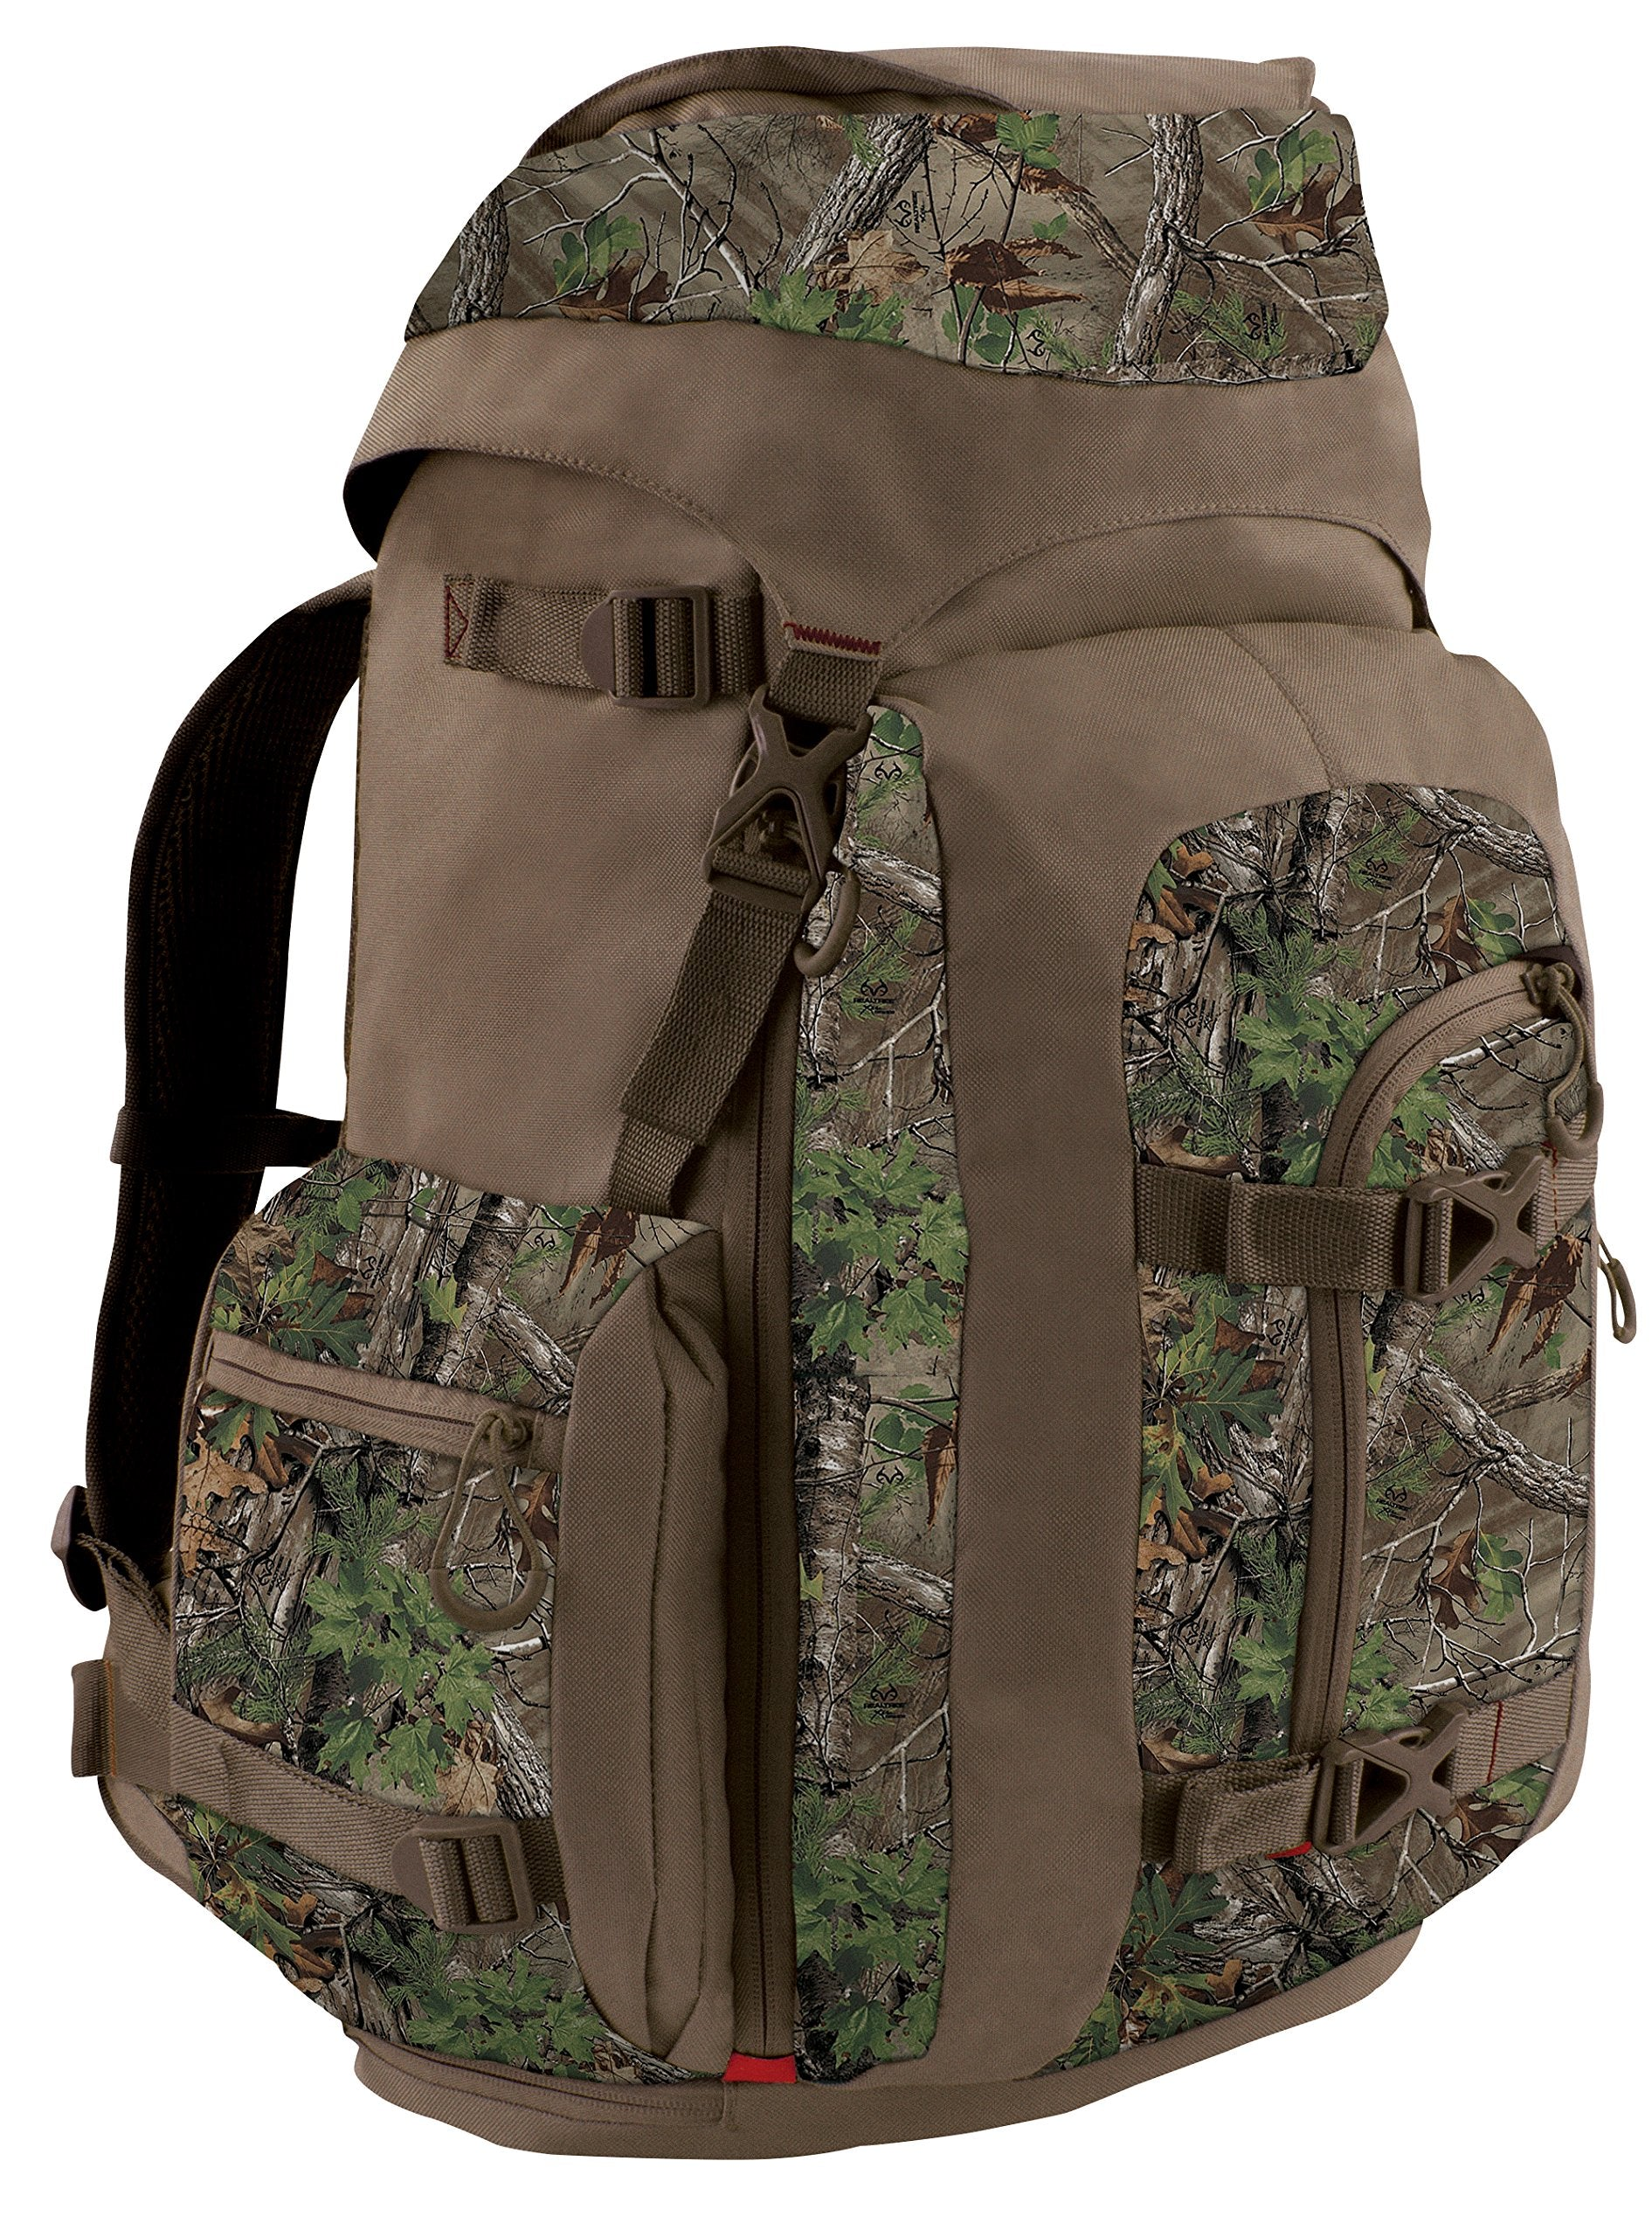 Fieldline Pro Series Glenwood Canyon Edge Frame Pack